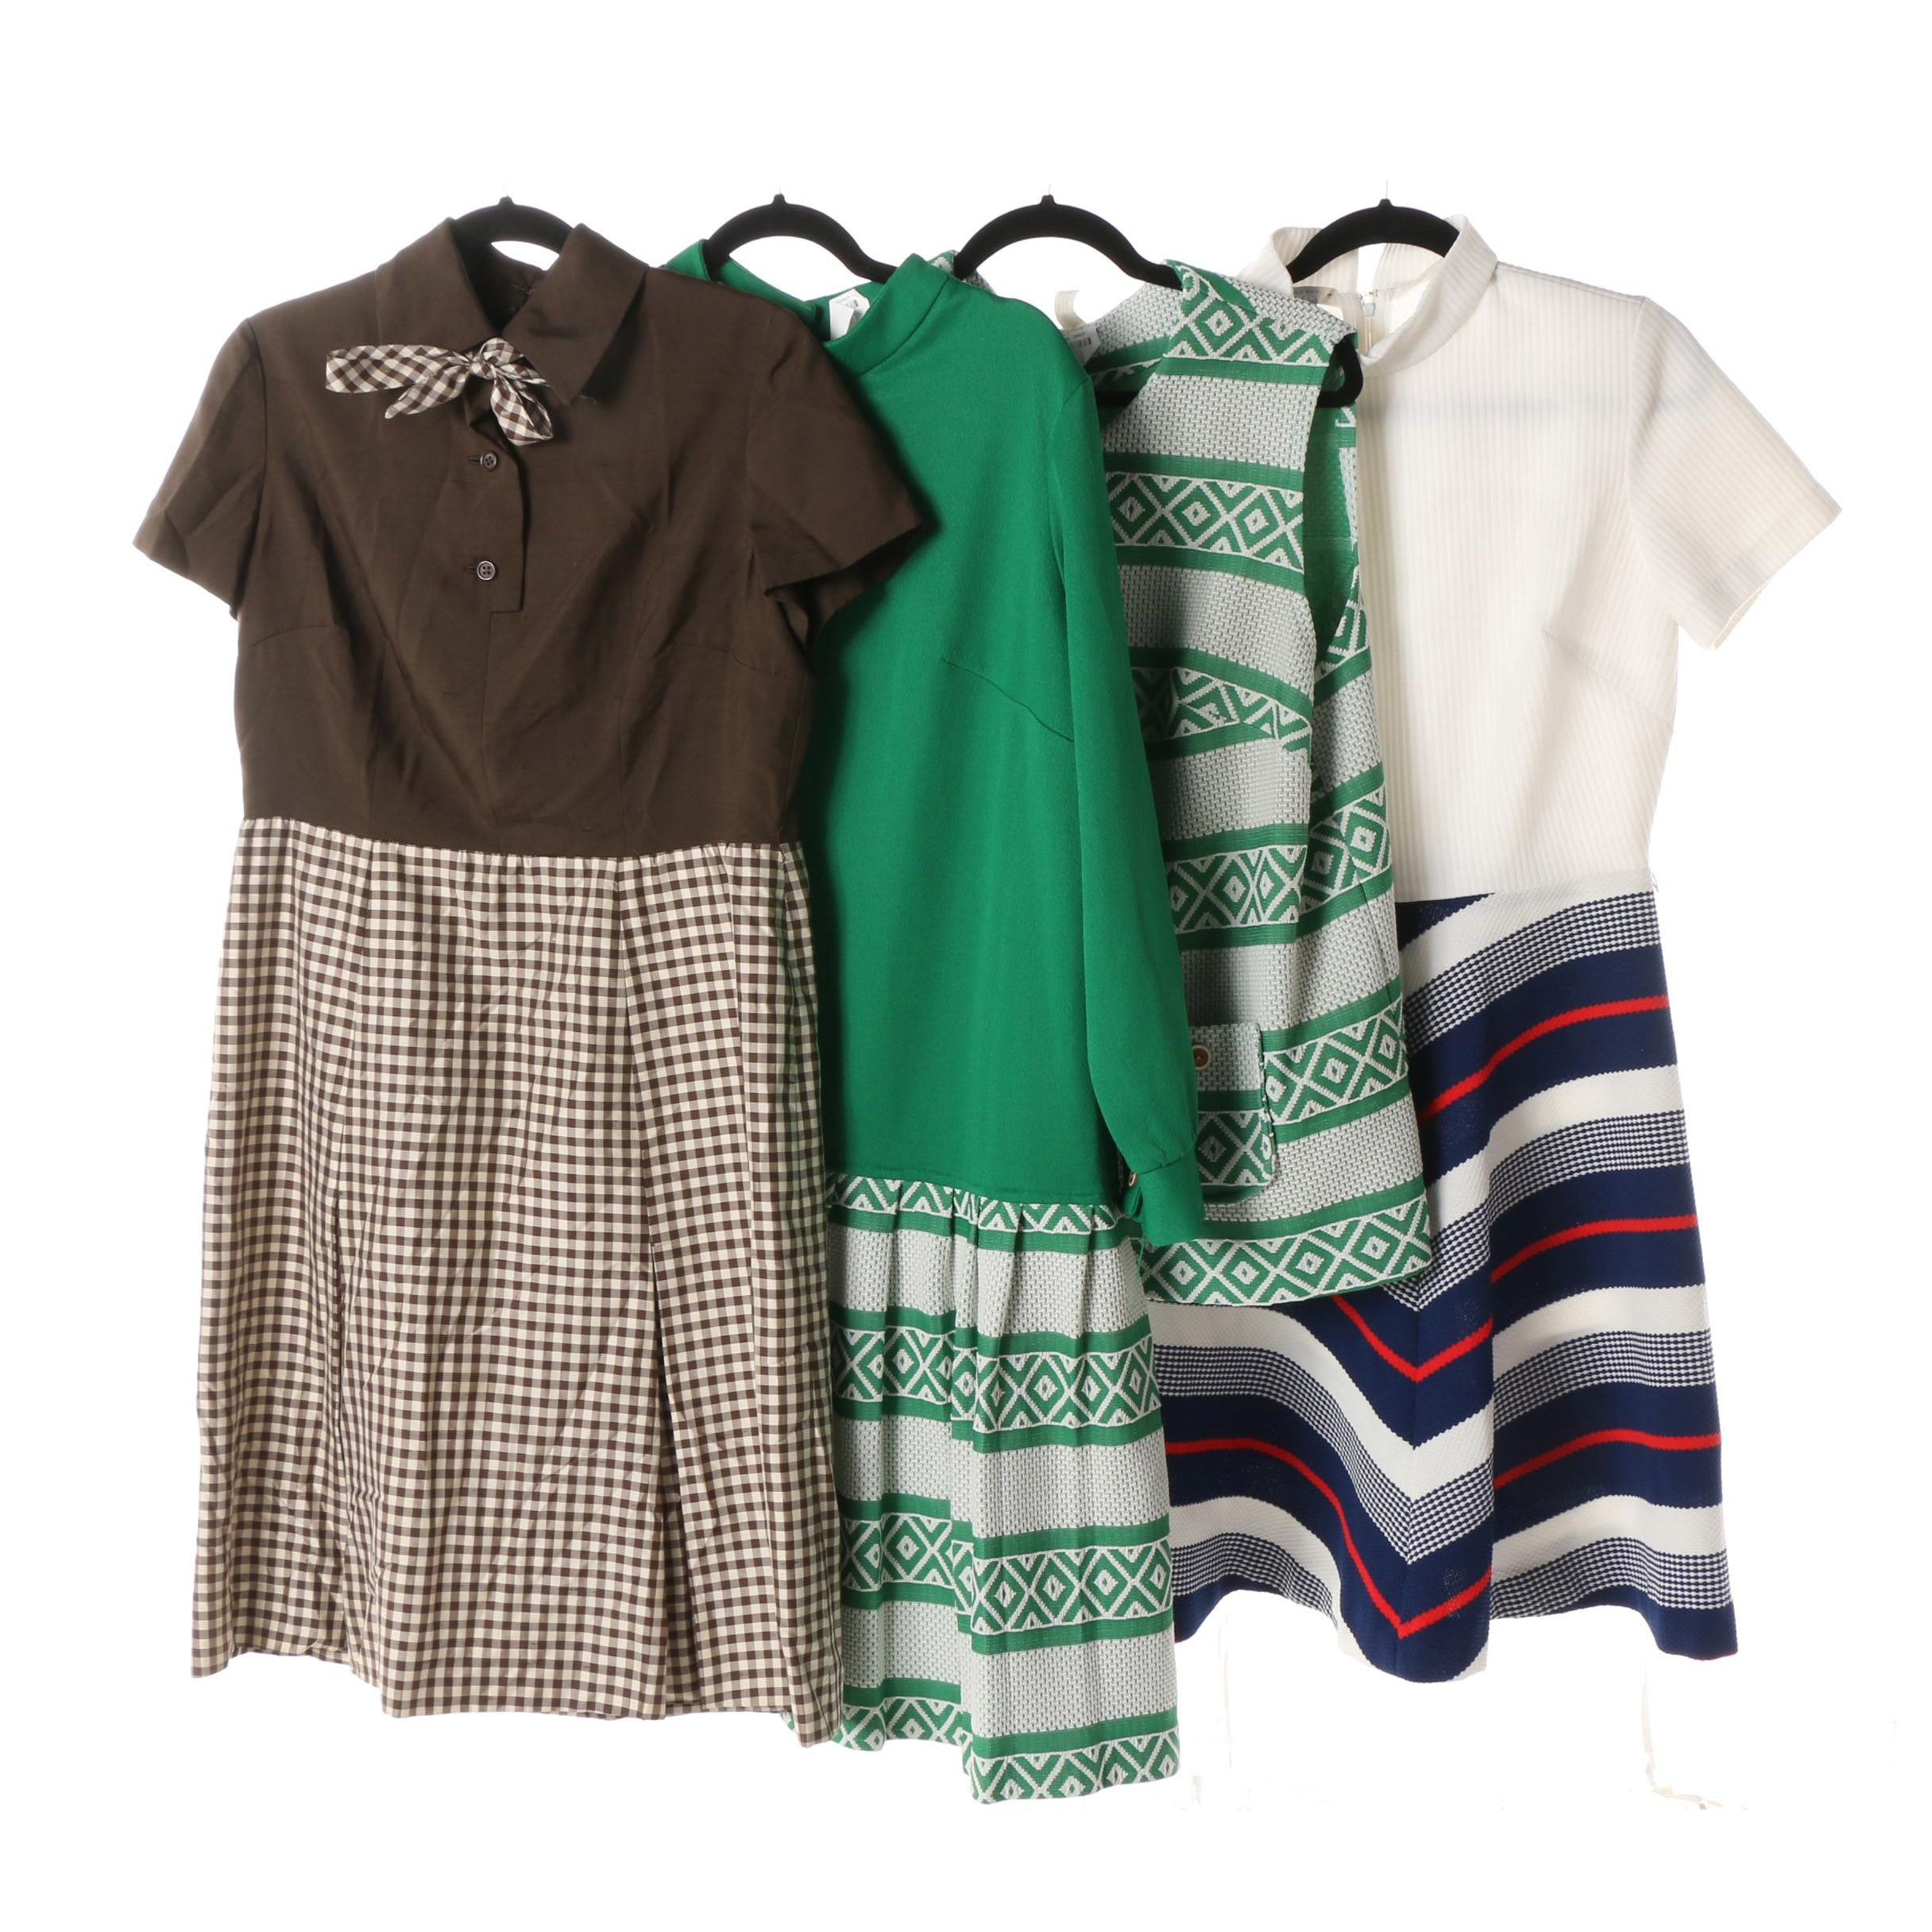 Circa 1970s Bill Blass Brown Gingham and Other Casual Dresses